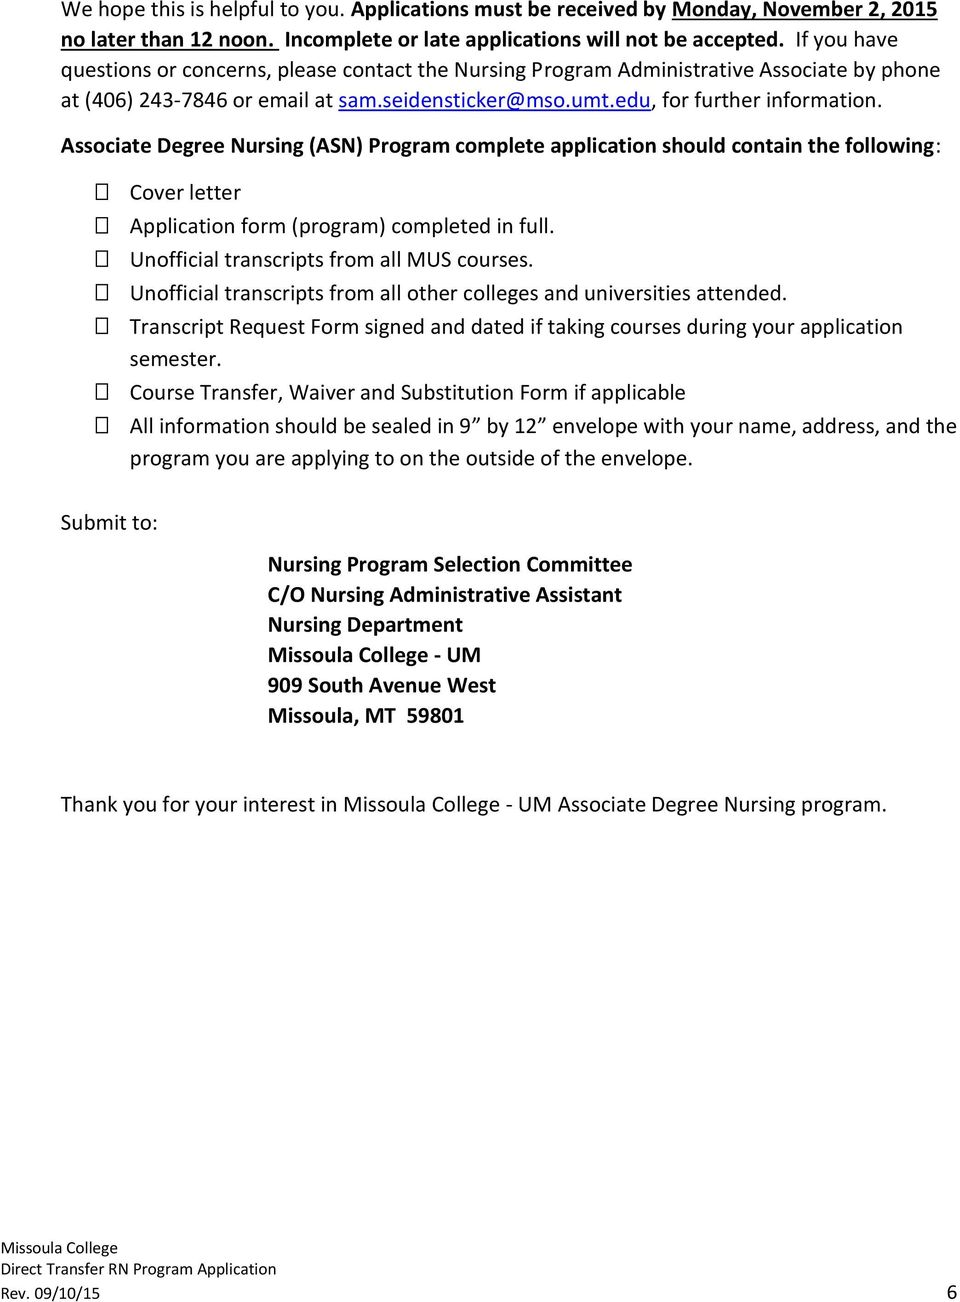 Associate Degree Nursing (ASN) Program complete application should contain the following: Cover letter Application form (program) completed in full. Unofficial transcripts from all MUS courses.